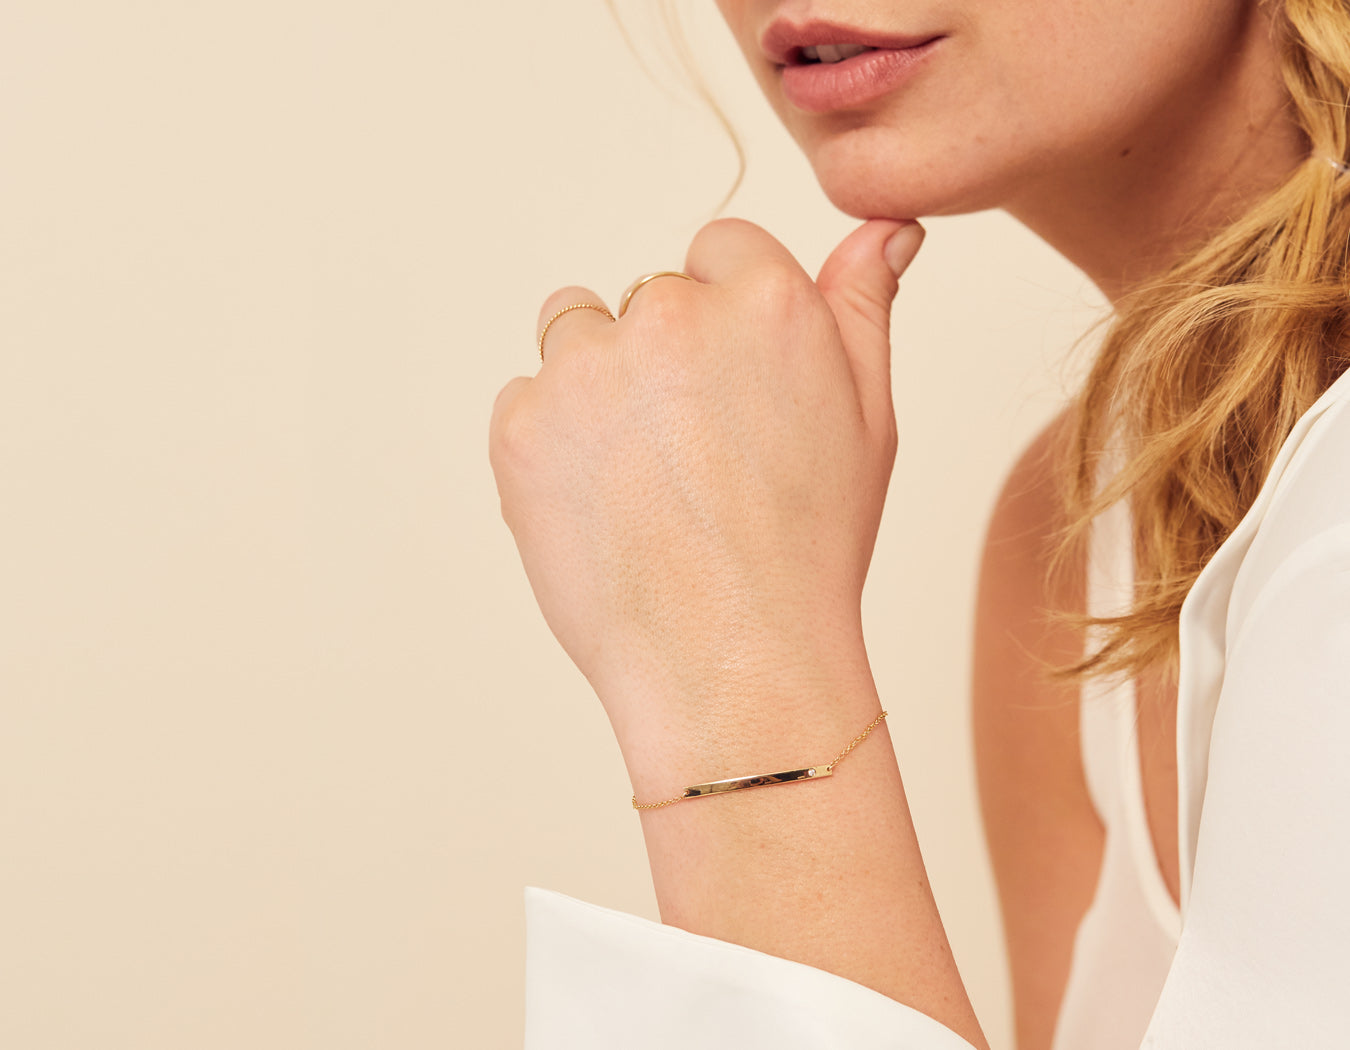 Woman wearing dainty simple 14k yellow gold Bar Bracelet with Diamond by Vrai and Oro minimalist jewelry